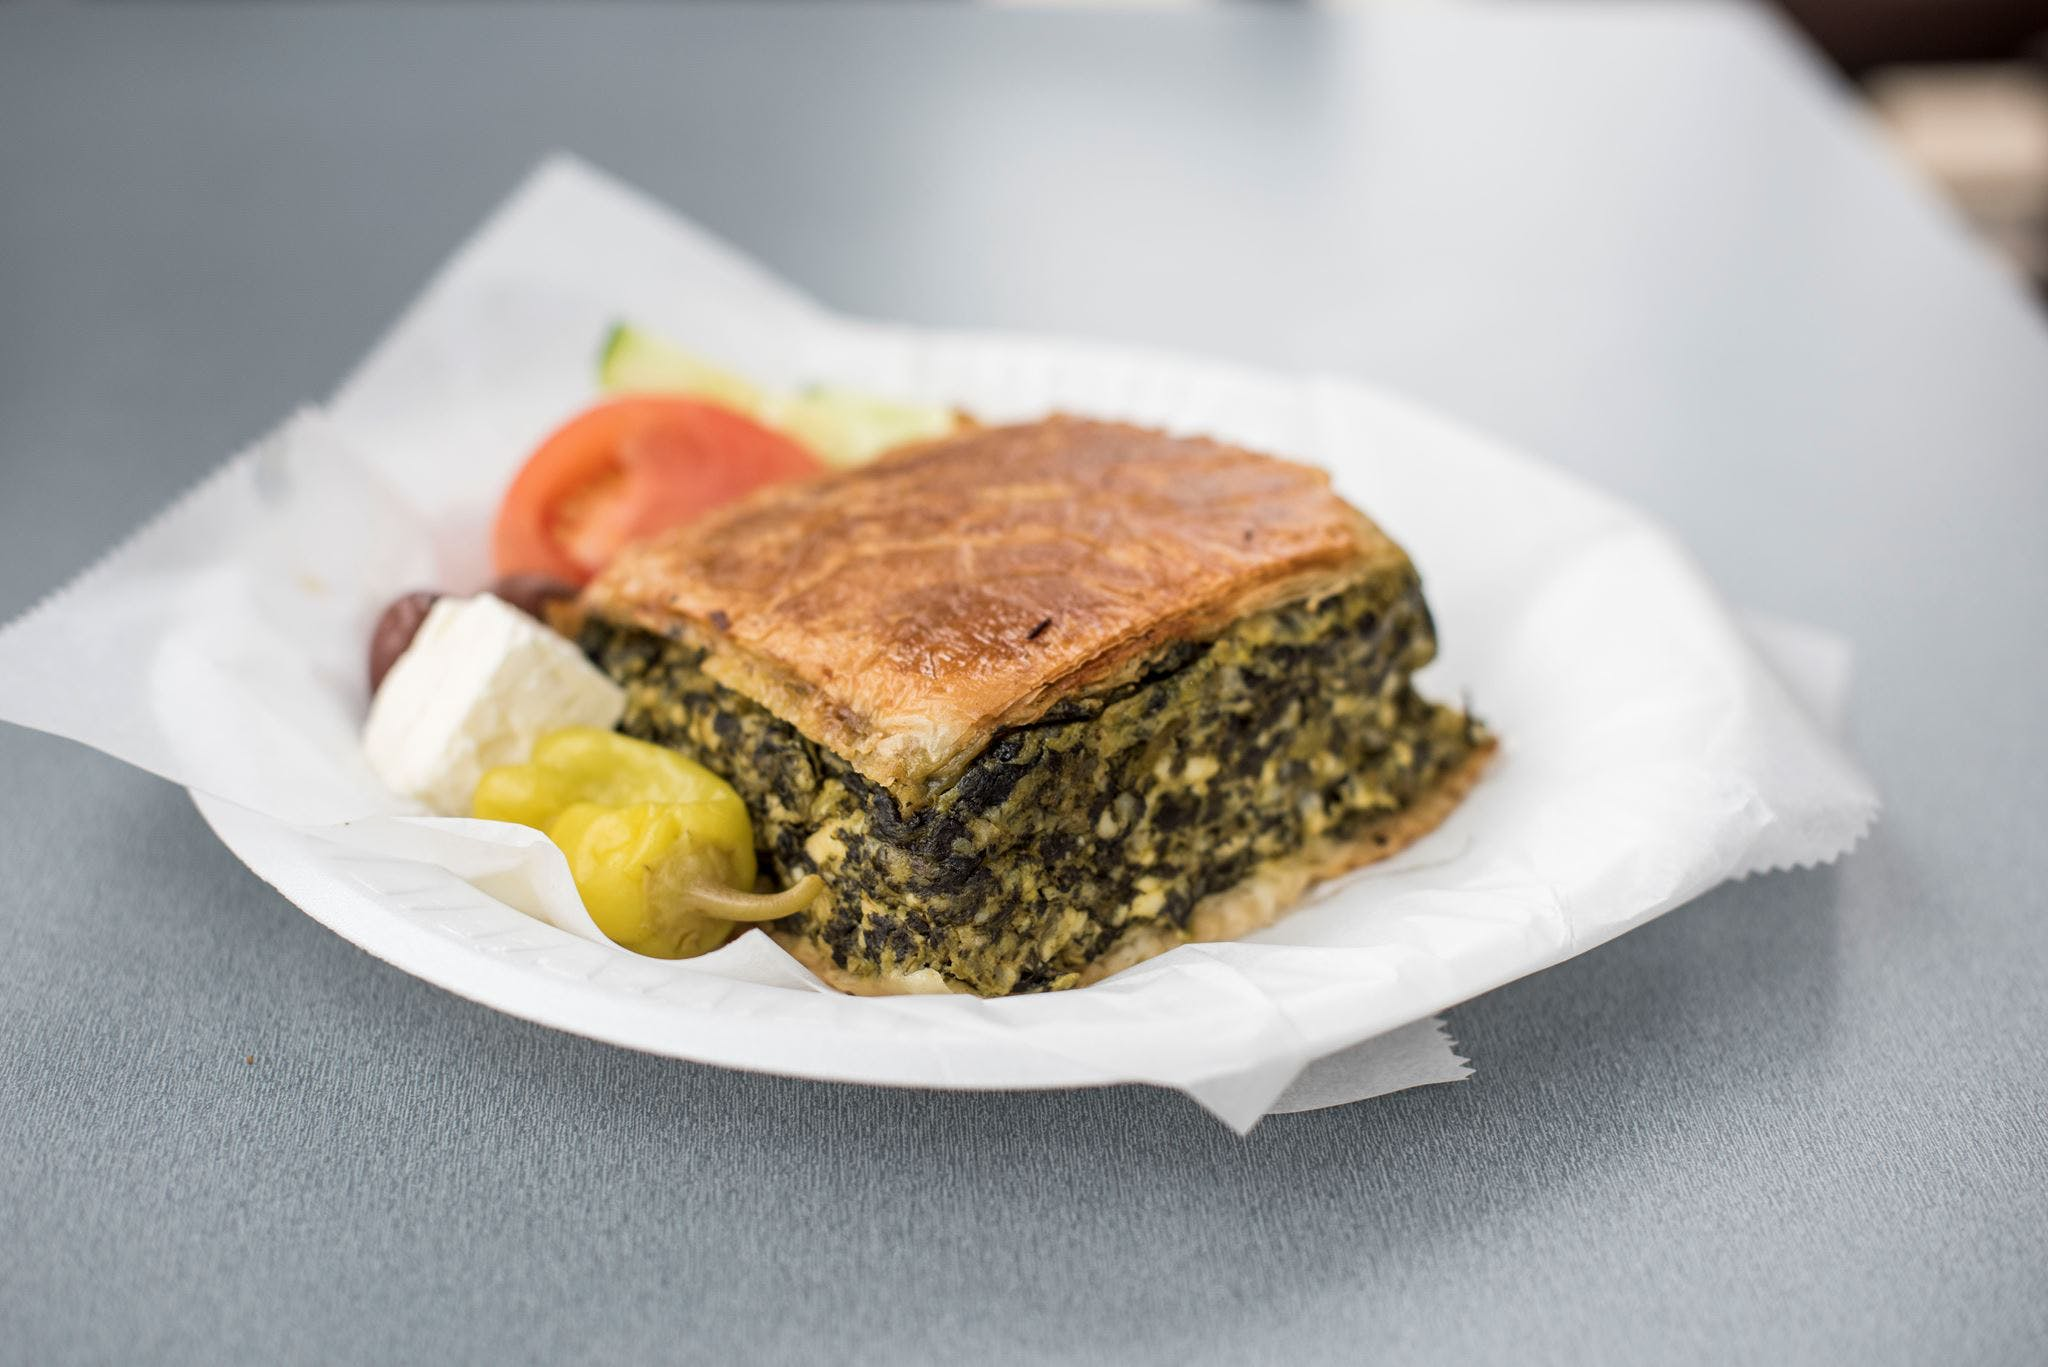 Spinach Pie Plate from Gyro Palace - Glendale in Glendale, WI